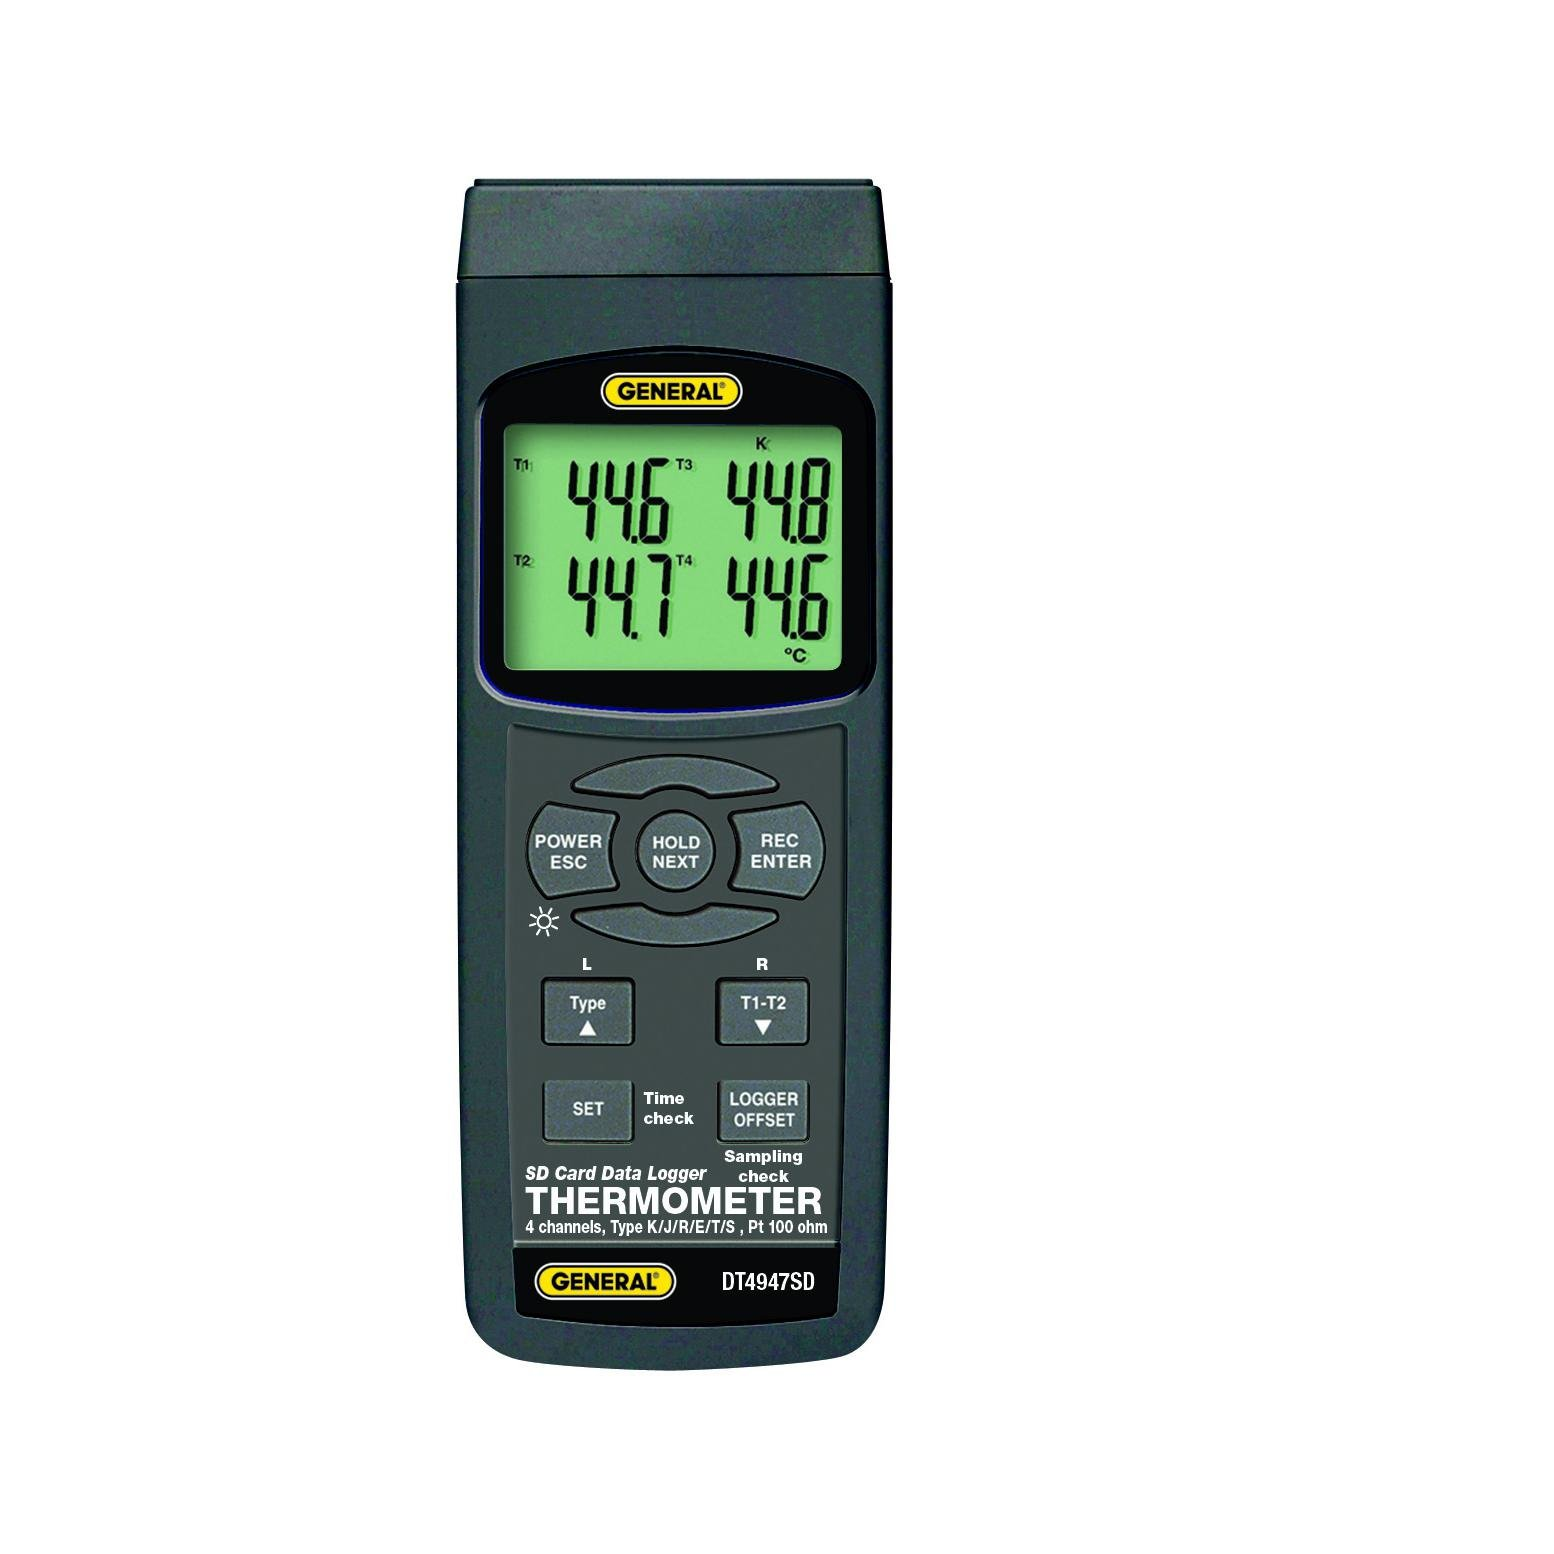 Data Logging 4 Channel Digital Thermometer W/ SD Card